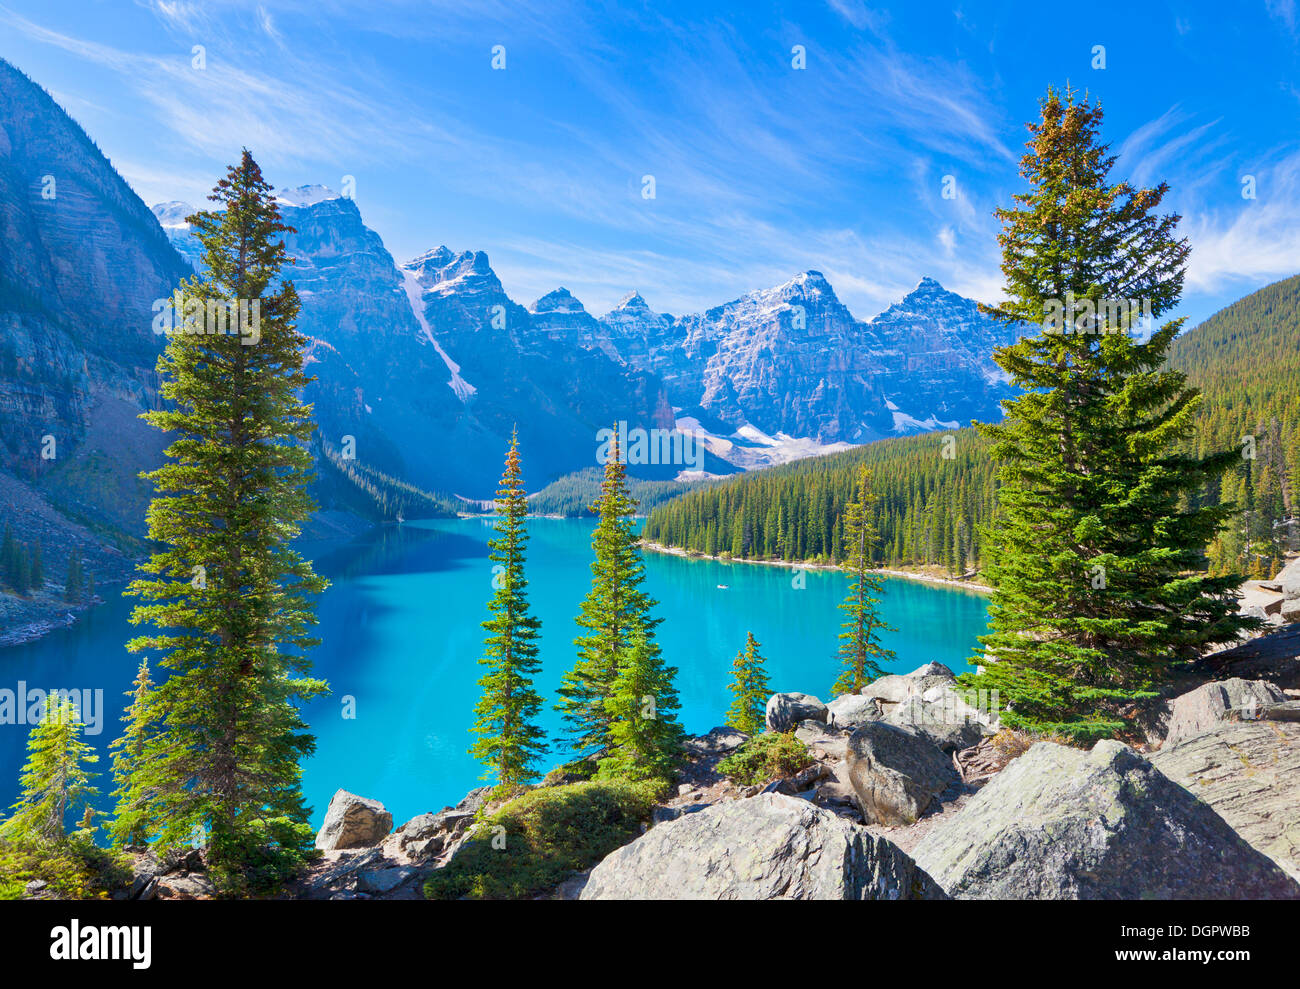 Moraine lake in the Valley of the Ten Peaks Banff national park Alberta Canada - Stock Image